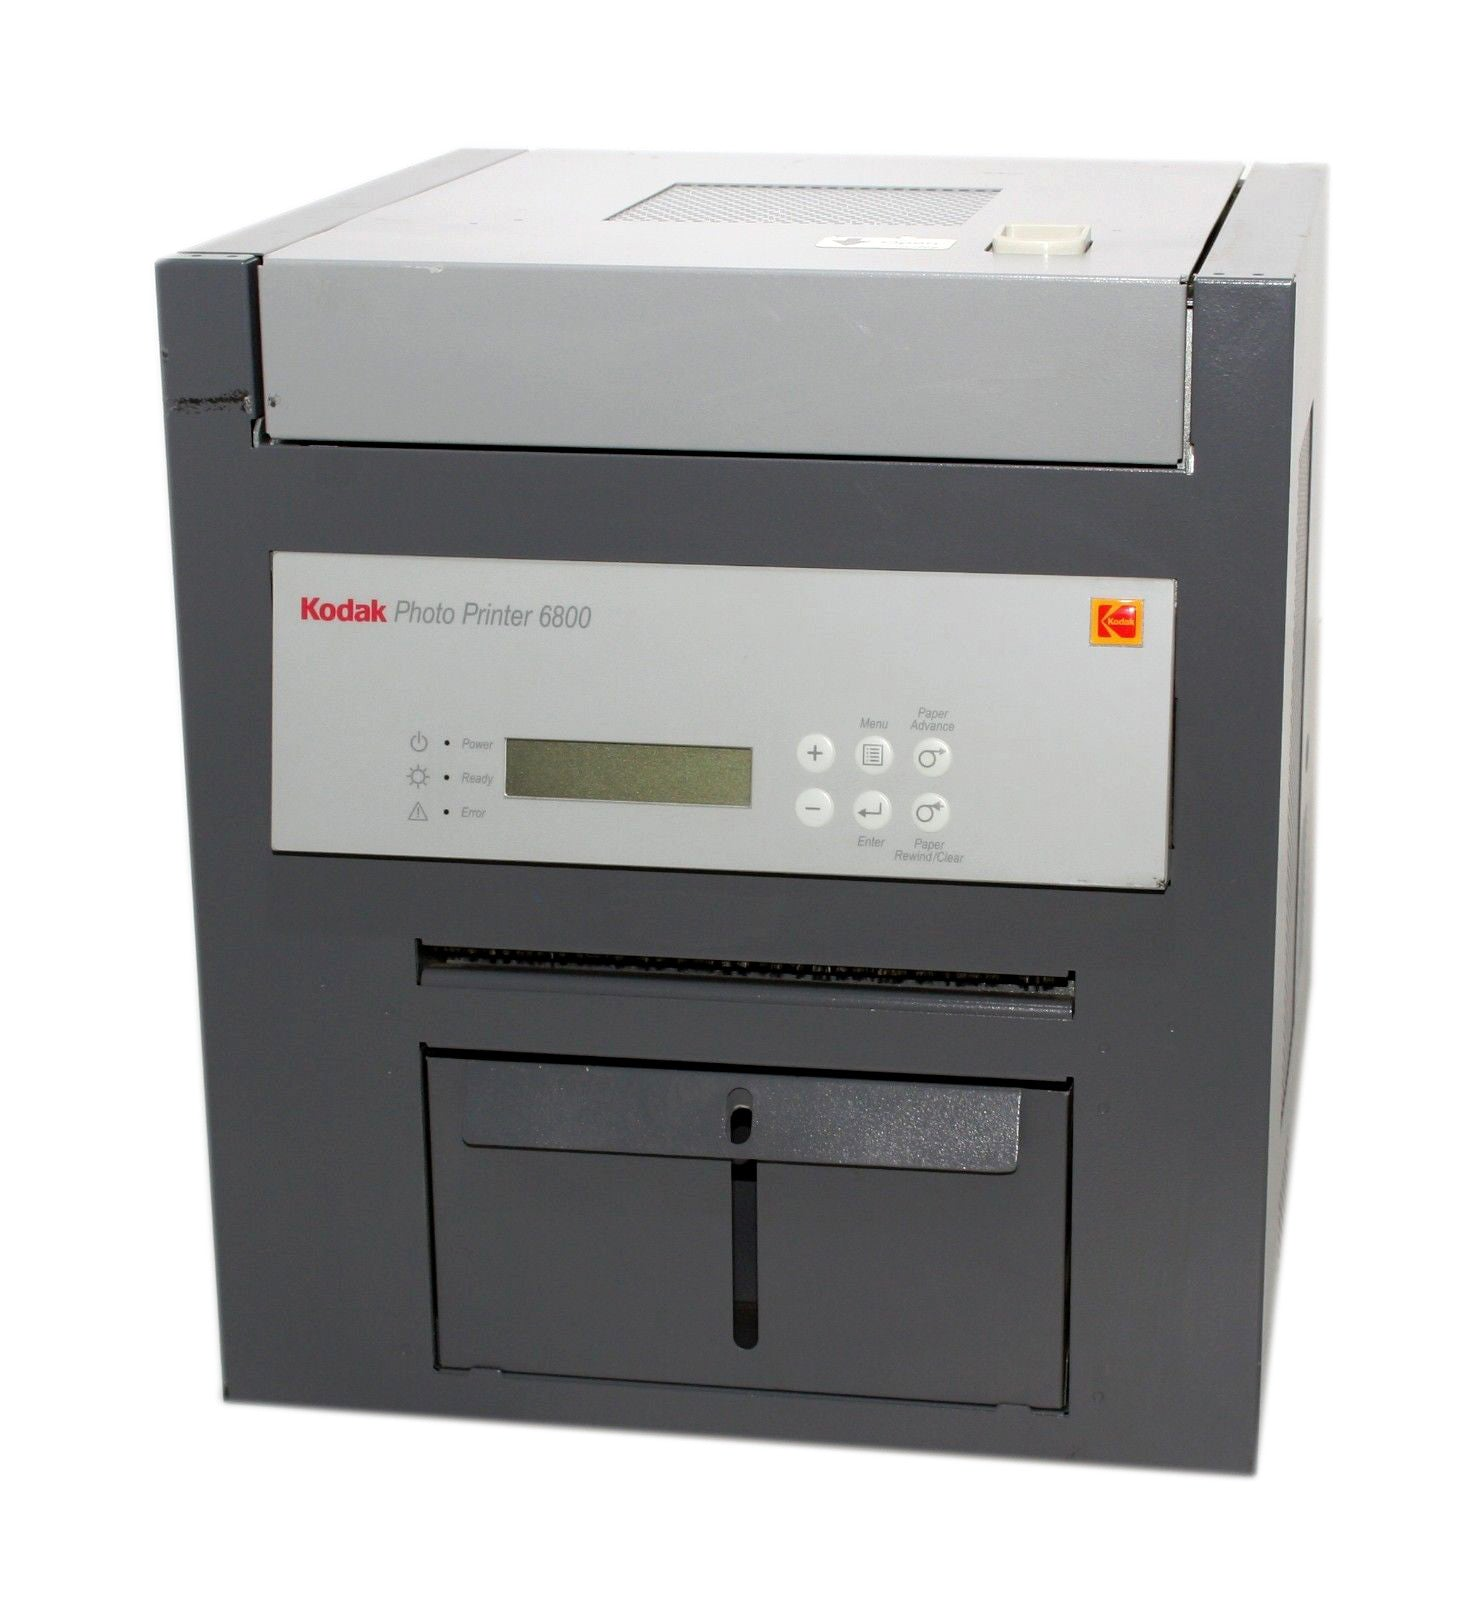 Kodak 6800 Printer - Dye Sub thermal Printer